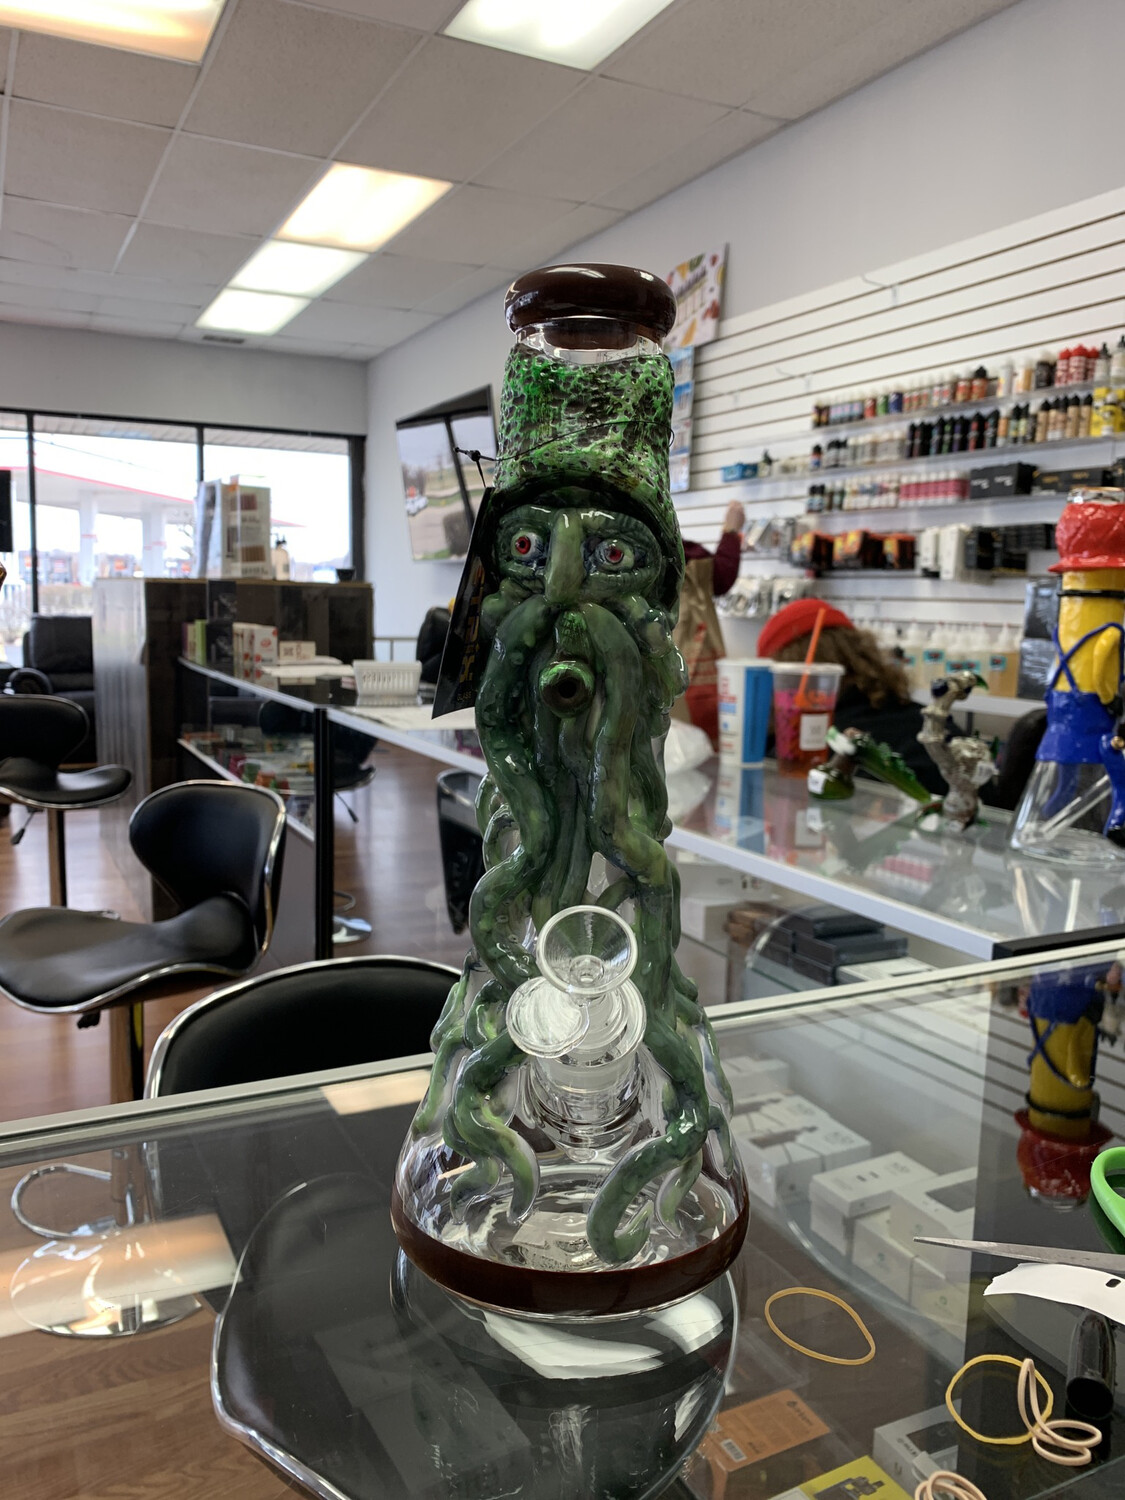 Glow In The Dark Monster Ceramic Waterpipe 14""